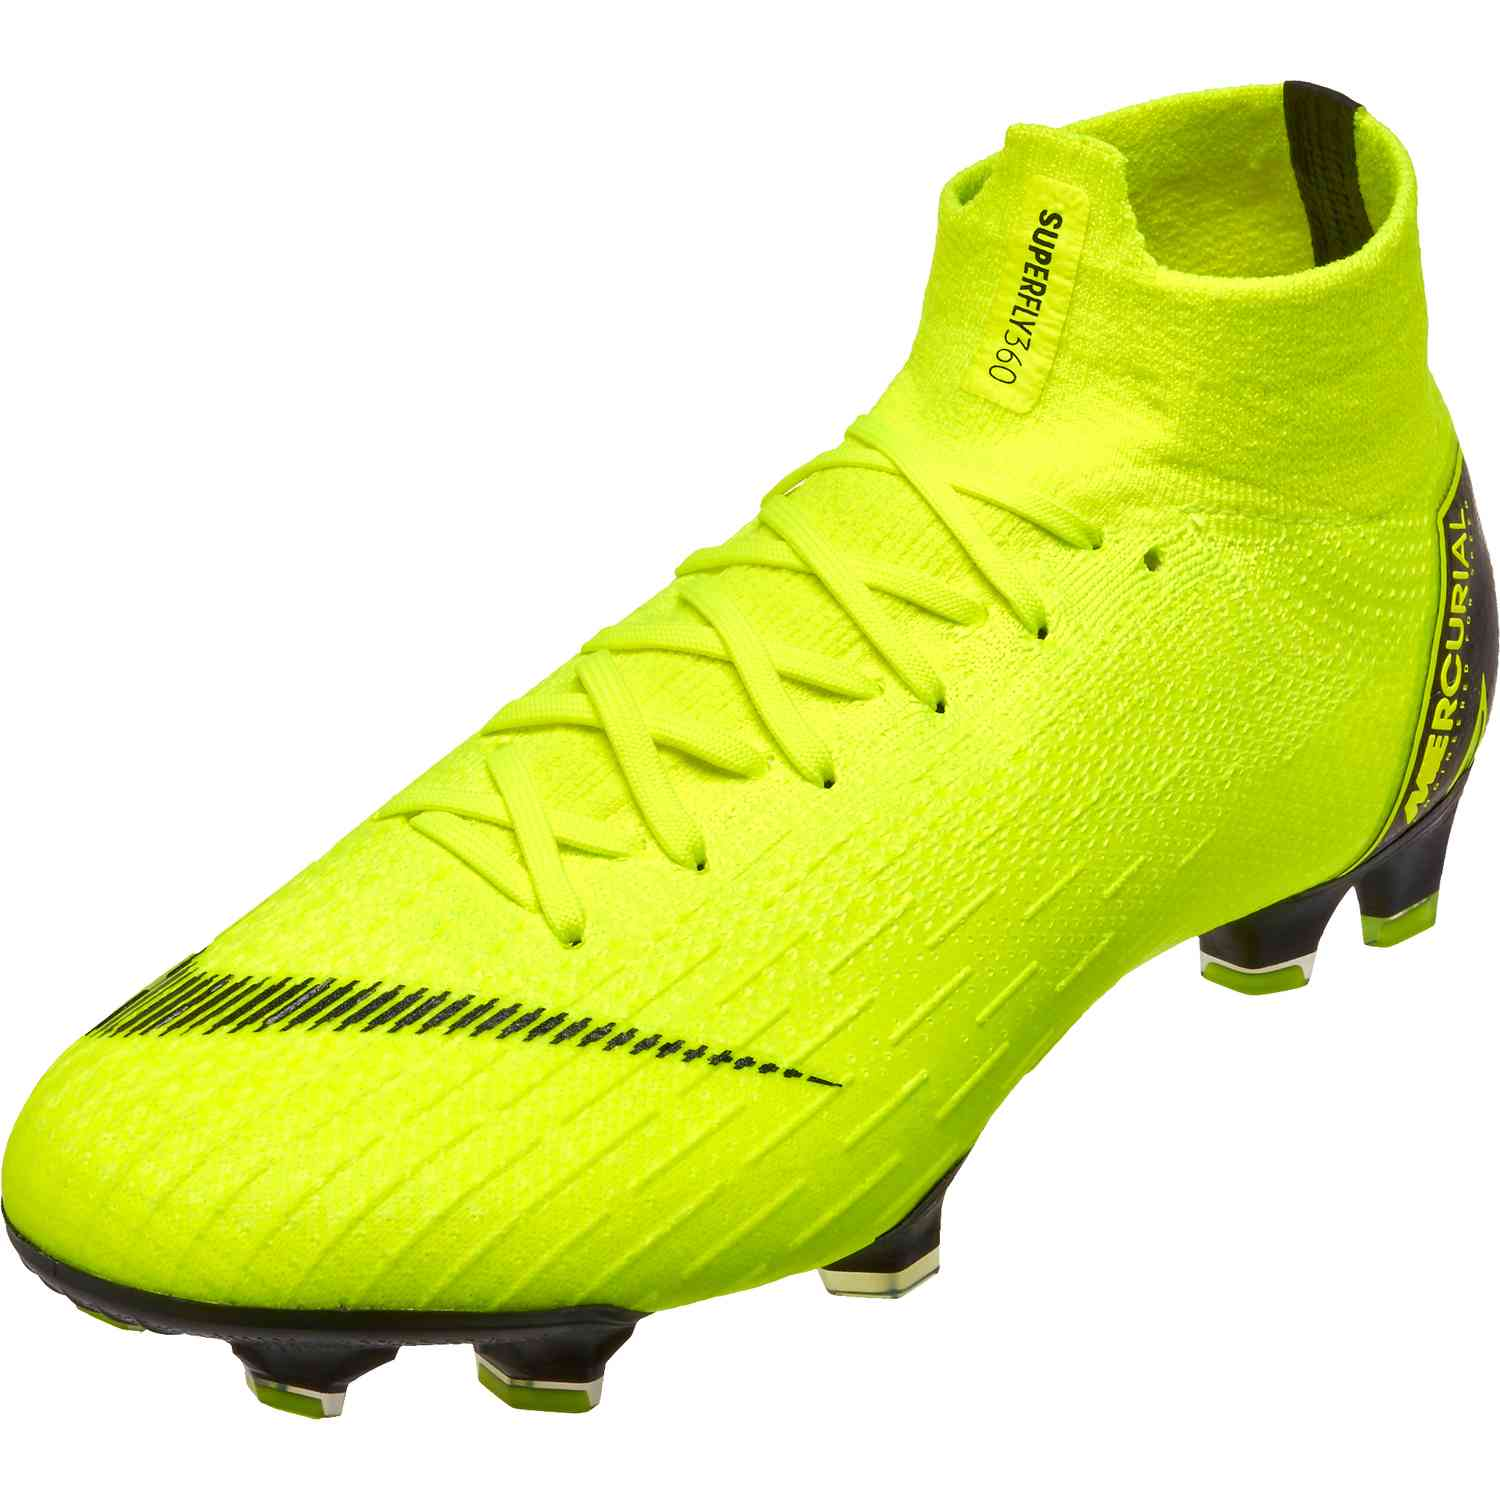 reputable site 24a5a 419bf Nike Mercurial Superfly 6 Elite - New Wave Pack 1 - SoccerPro